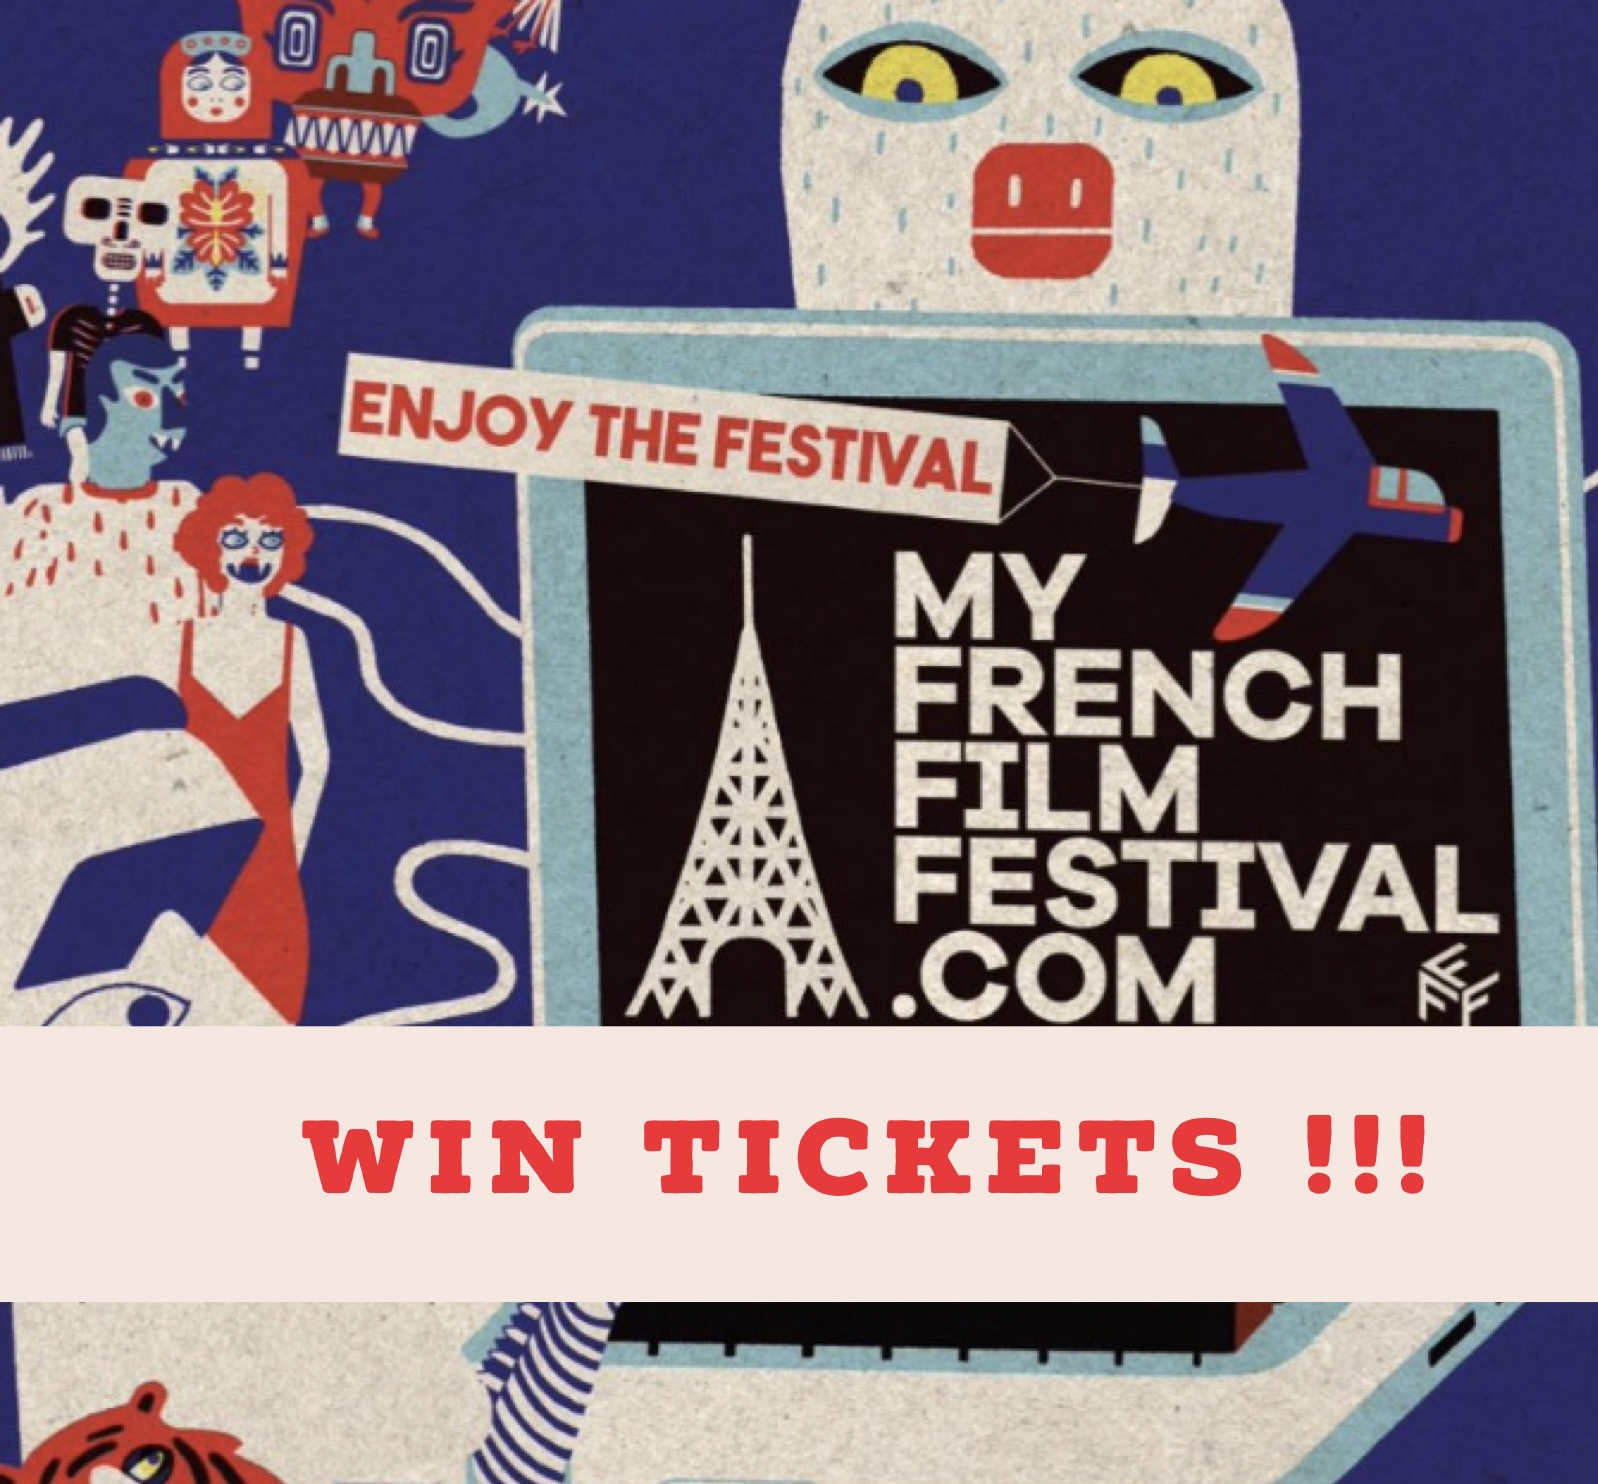 MyFrenchFilm festival Giveaway